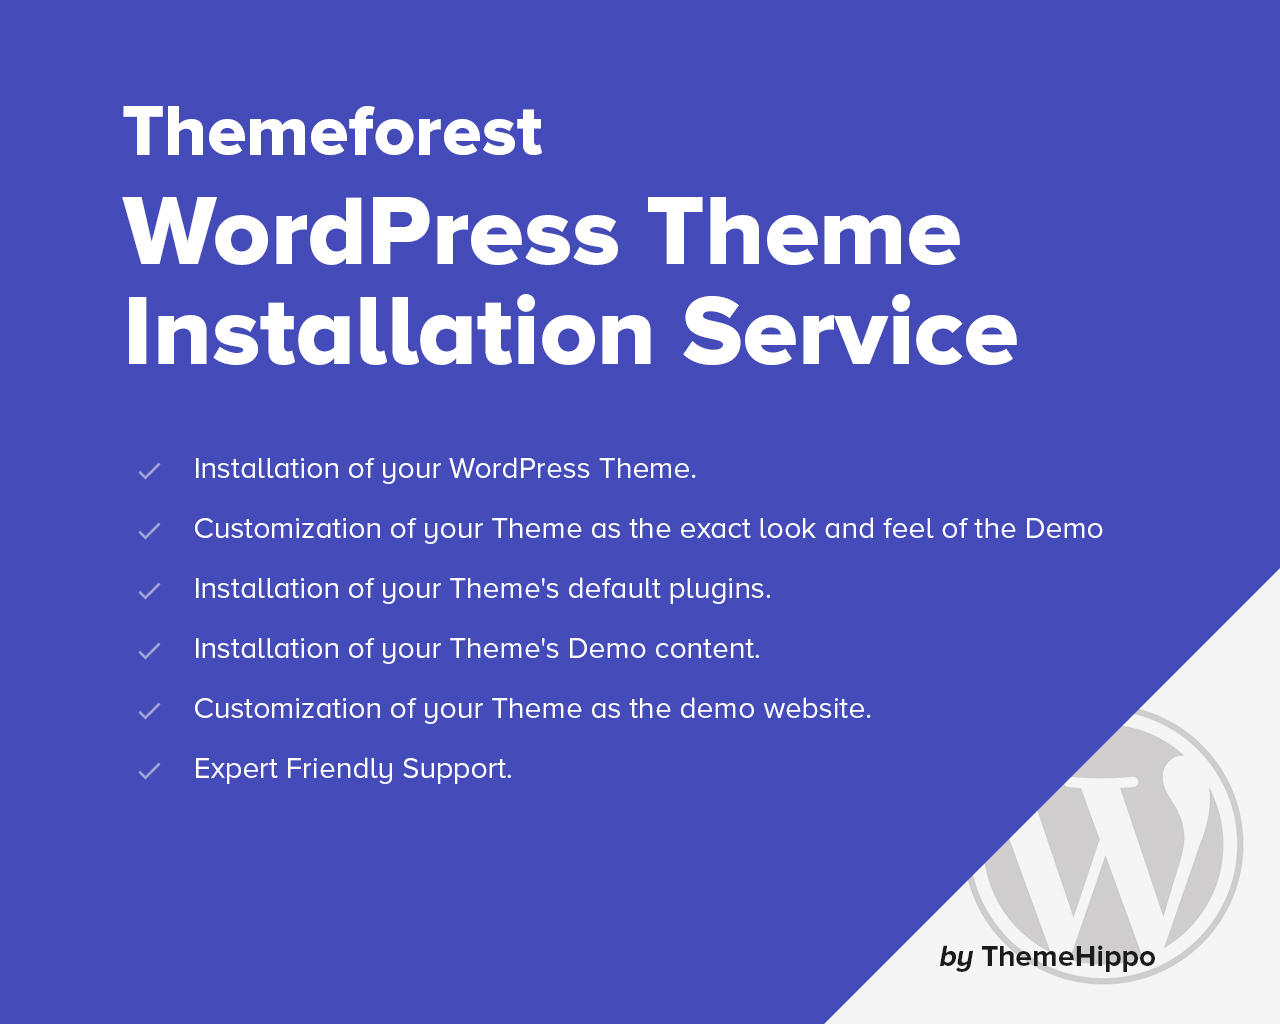 Themeforest WordPress Theme Installation Service (Incl. Demo Content, Logo, Plugins, Shop Set-up)  by themehippo - 101281